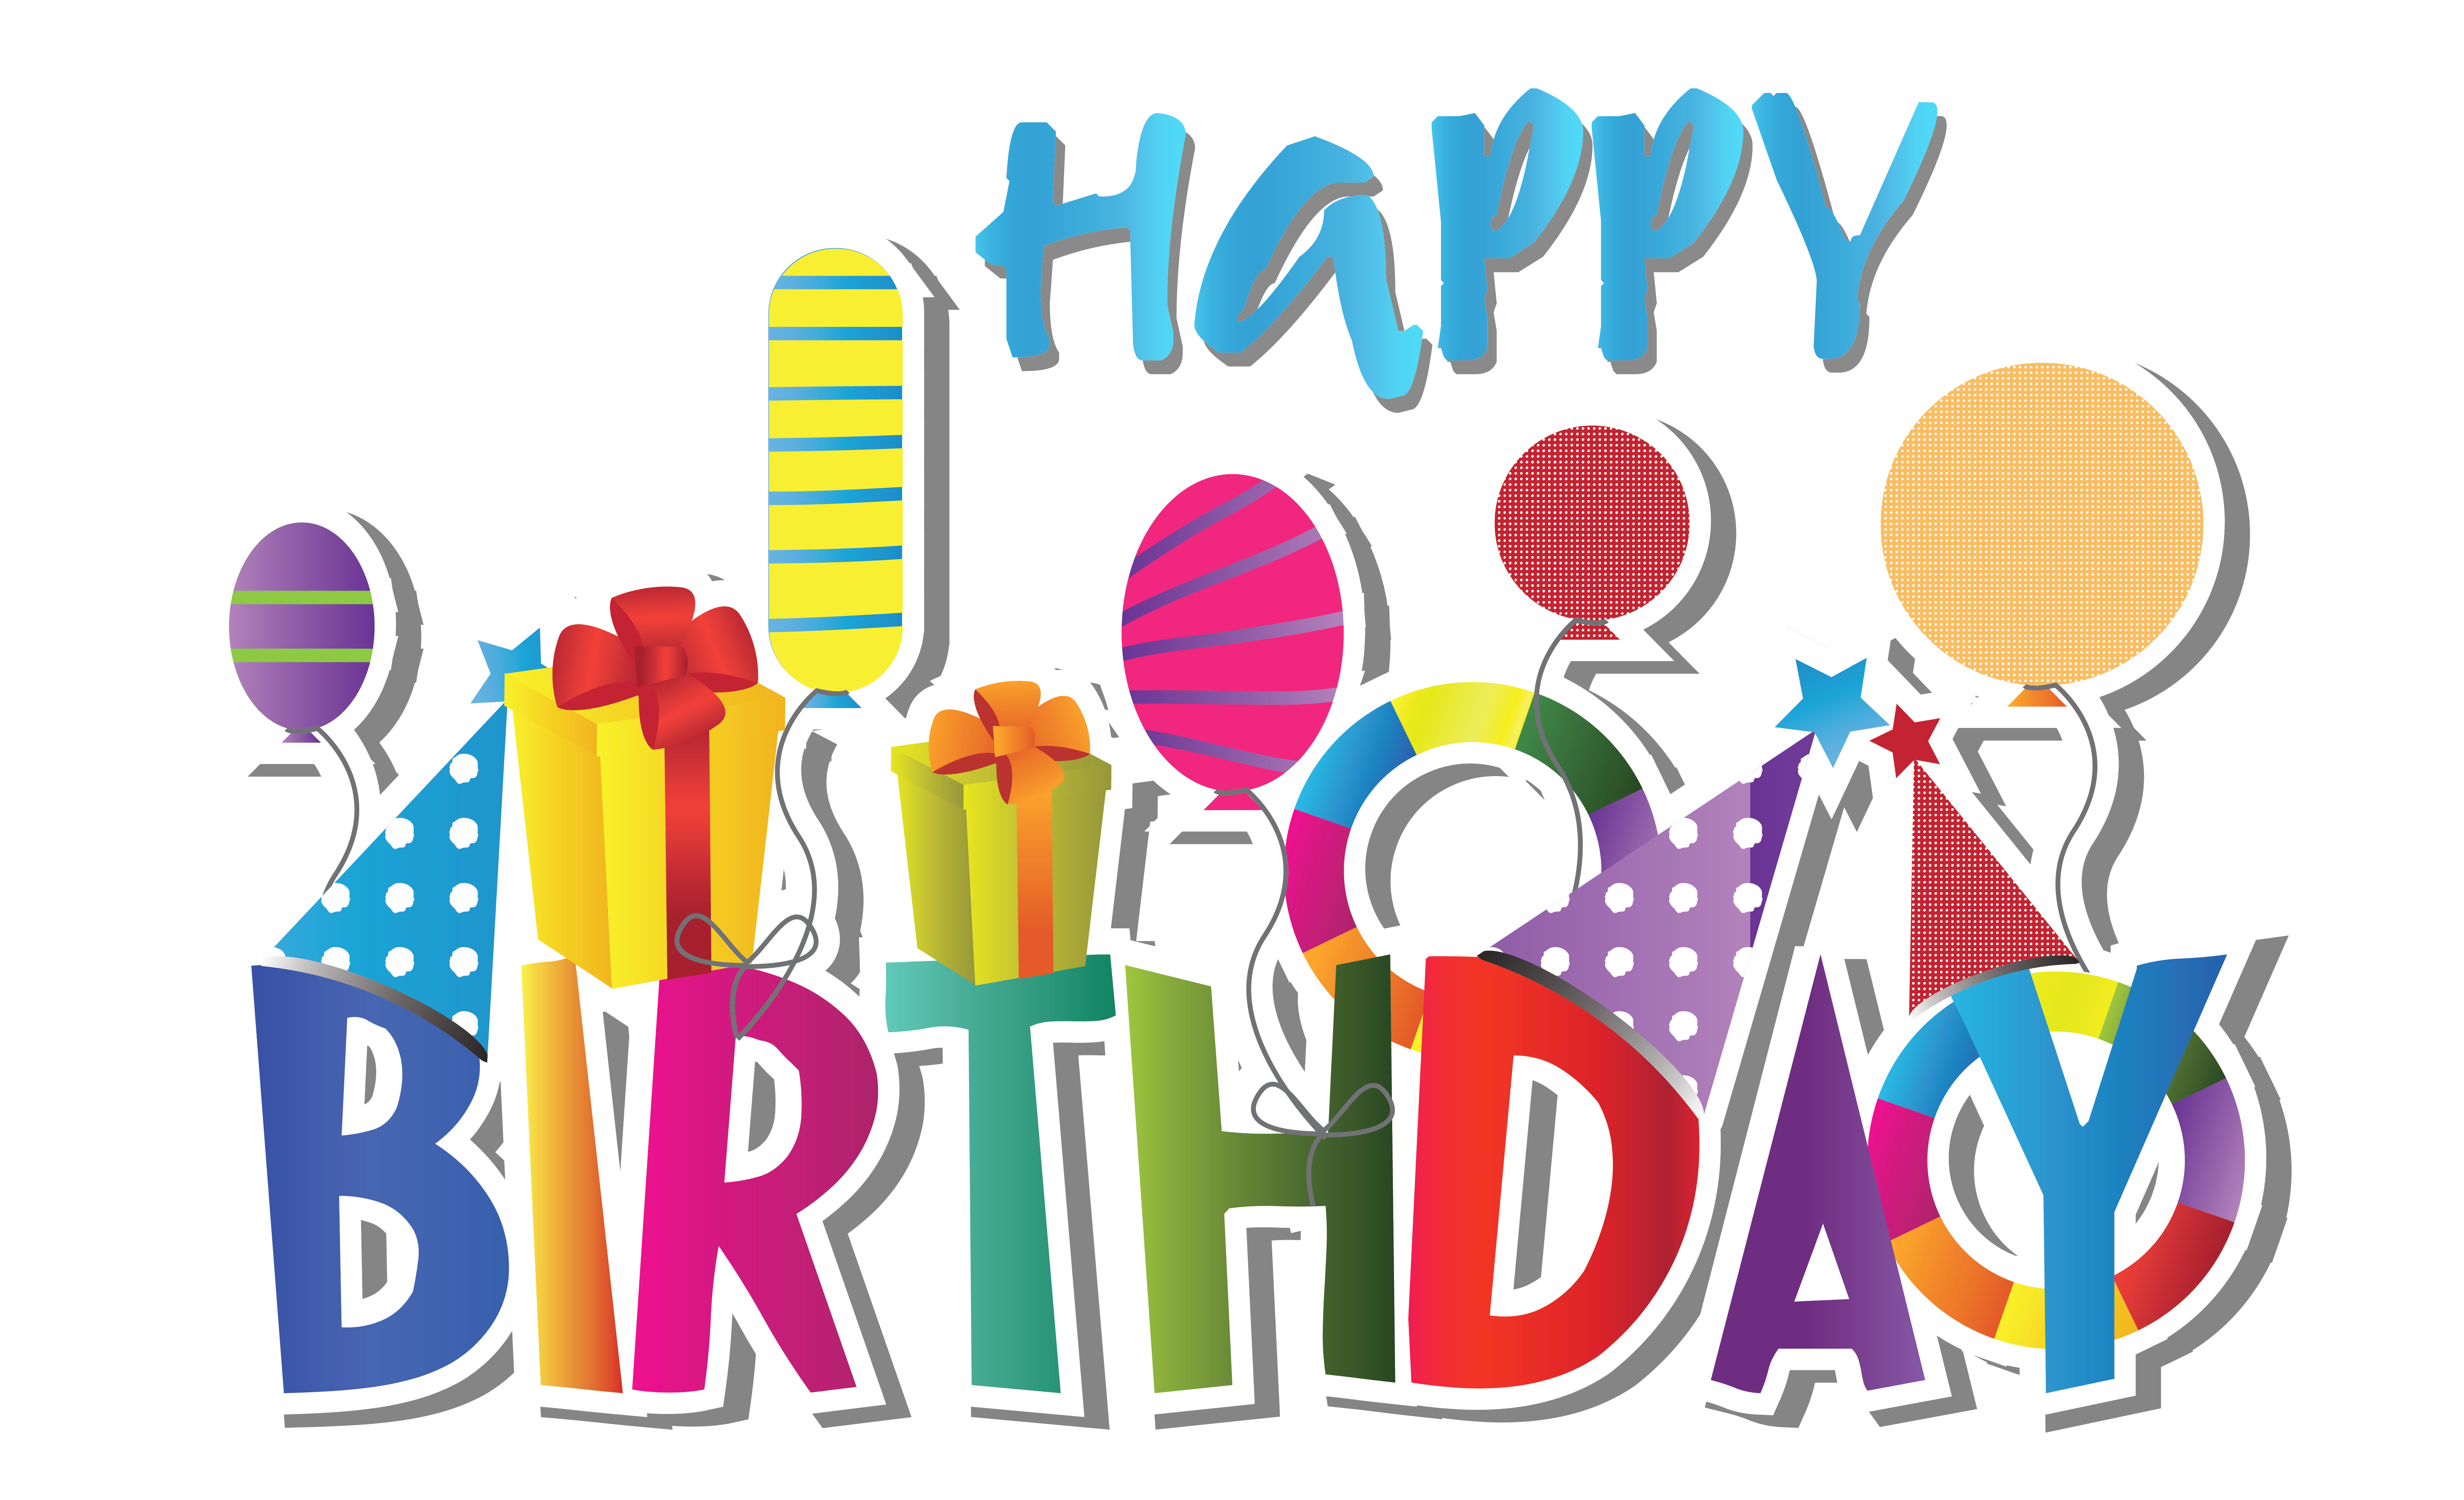 spongebob birthday clipart at getdrawings com free for personal rh getdrawings com animated birthday cliparts free download animated birthday clip art free images